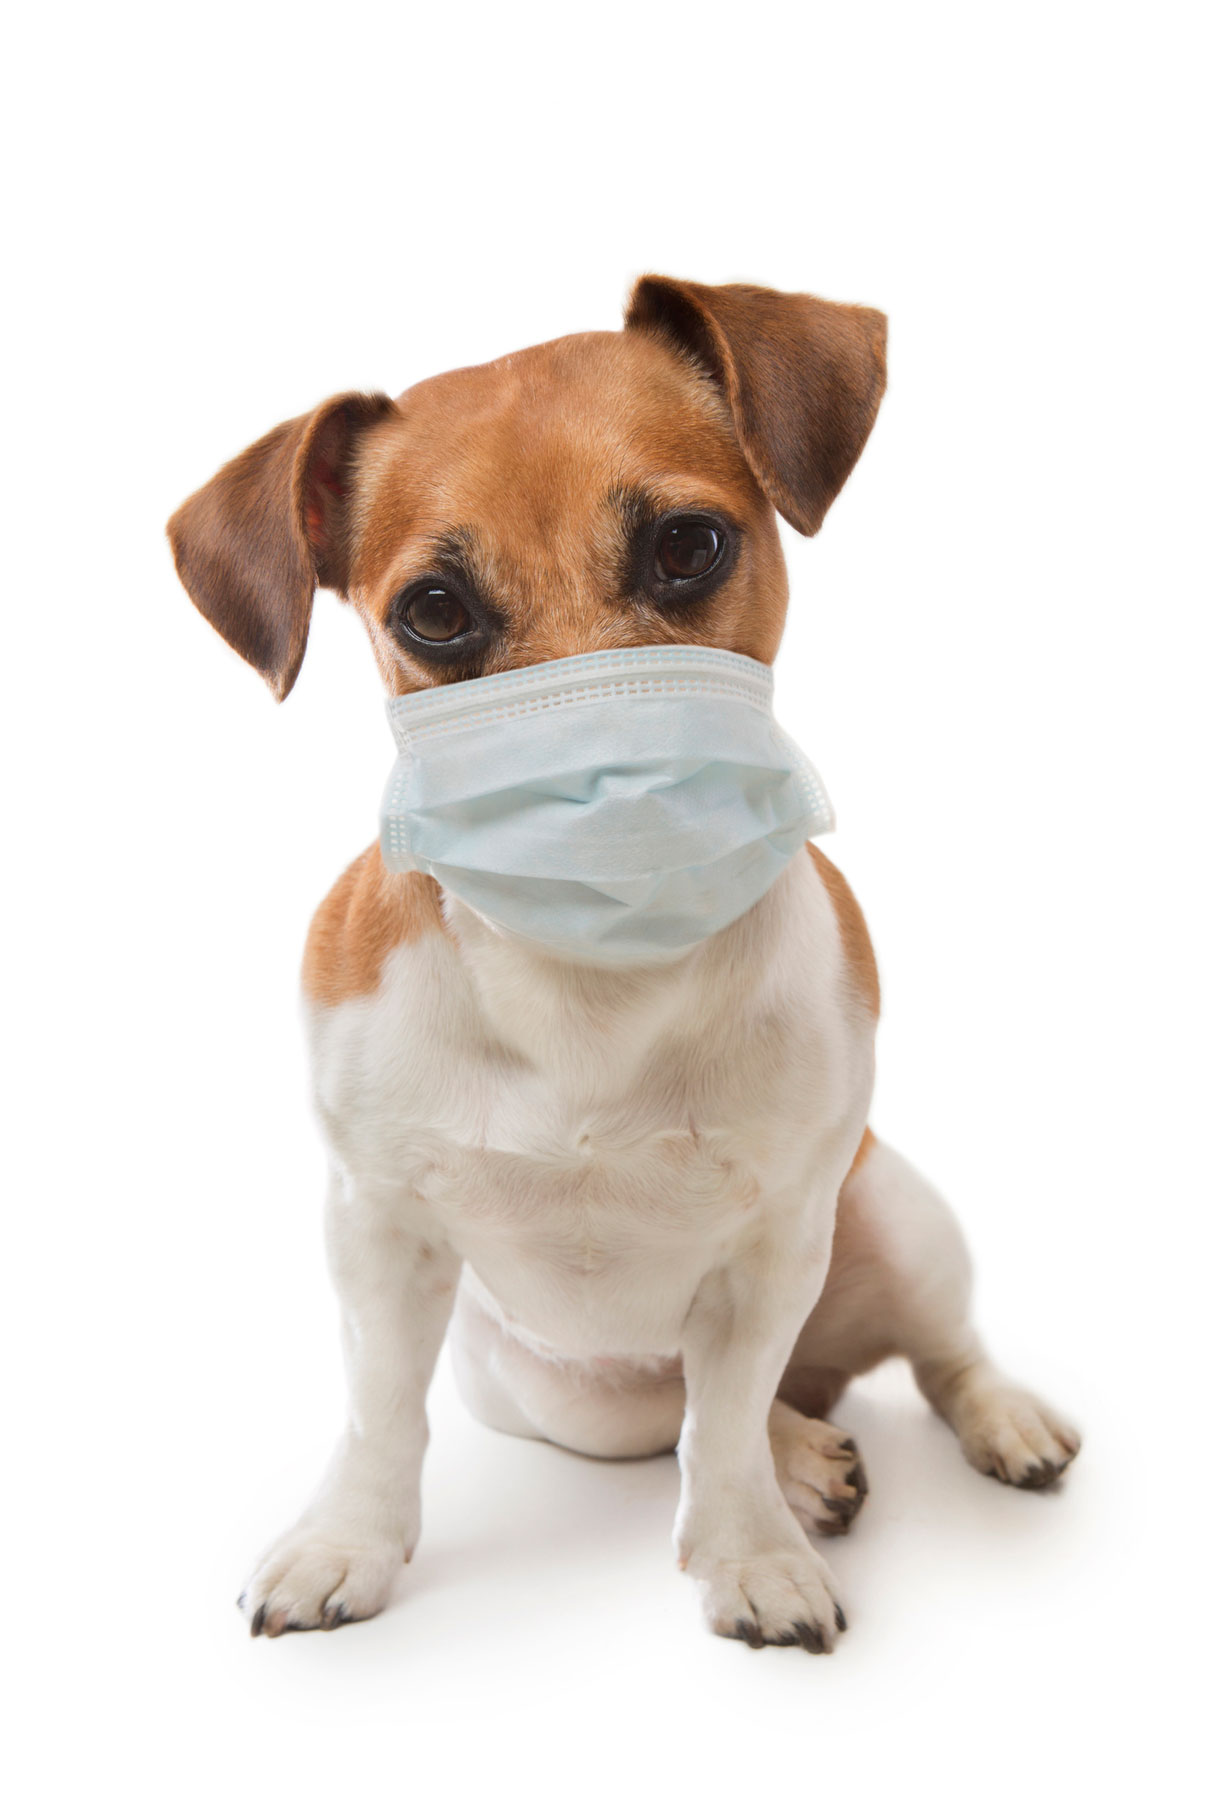 Dog with dog flu wearing a sick mask